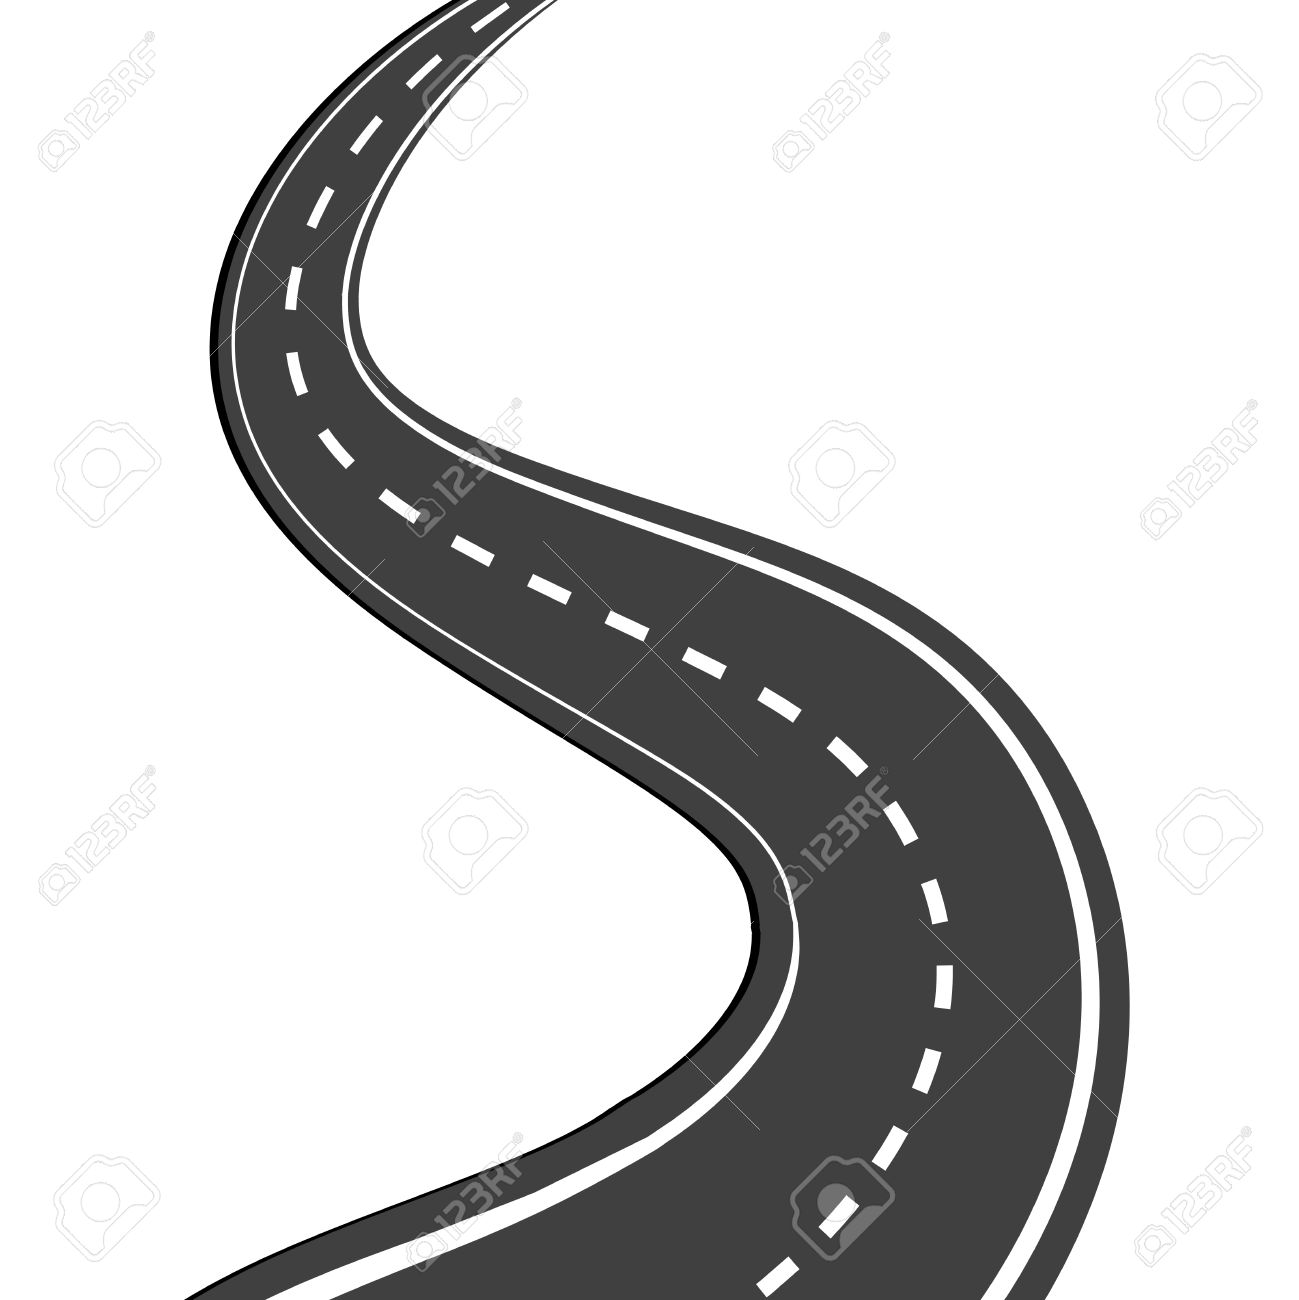 Highway clipart long road, Highway long road Transparent.